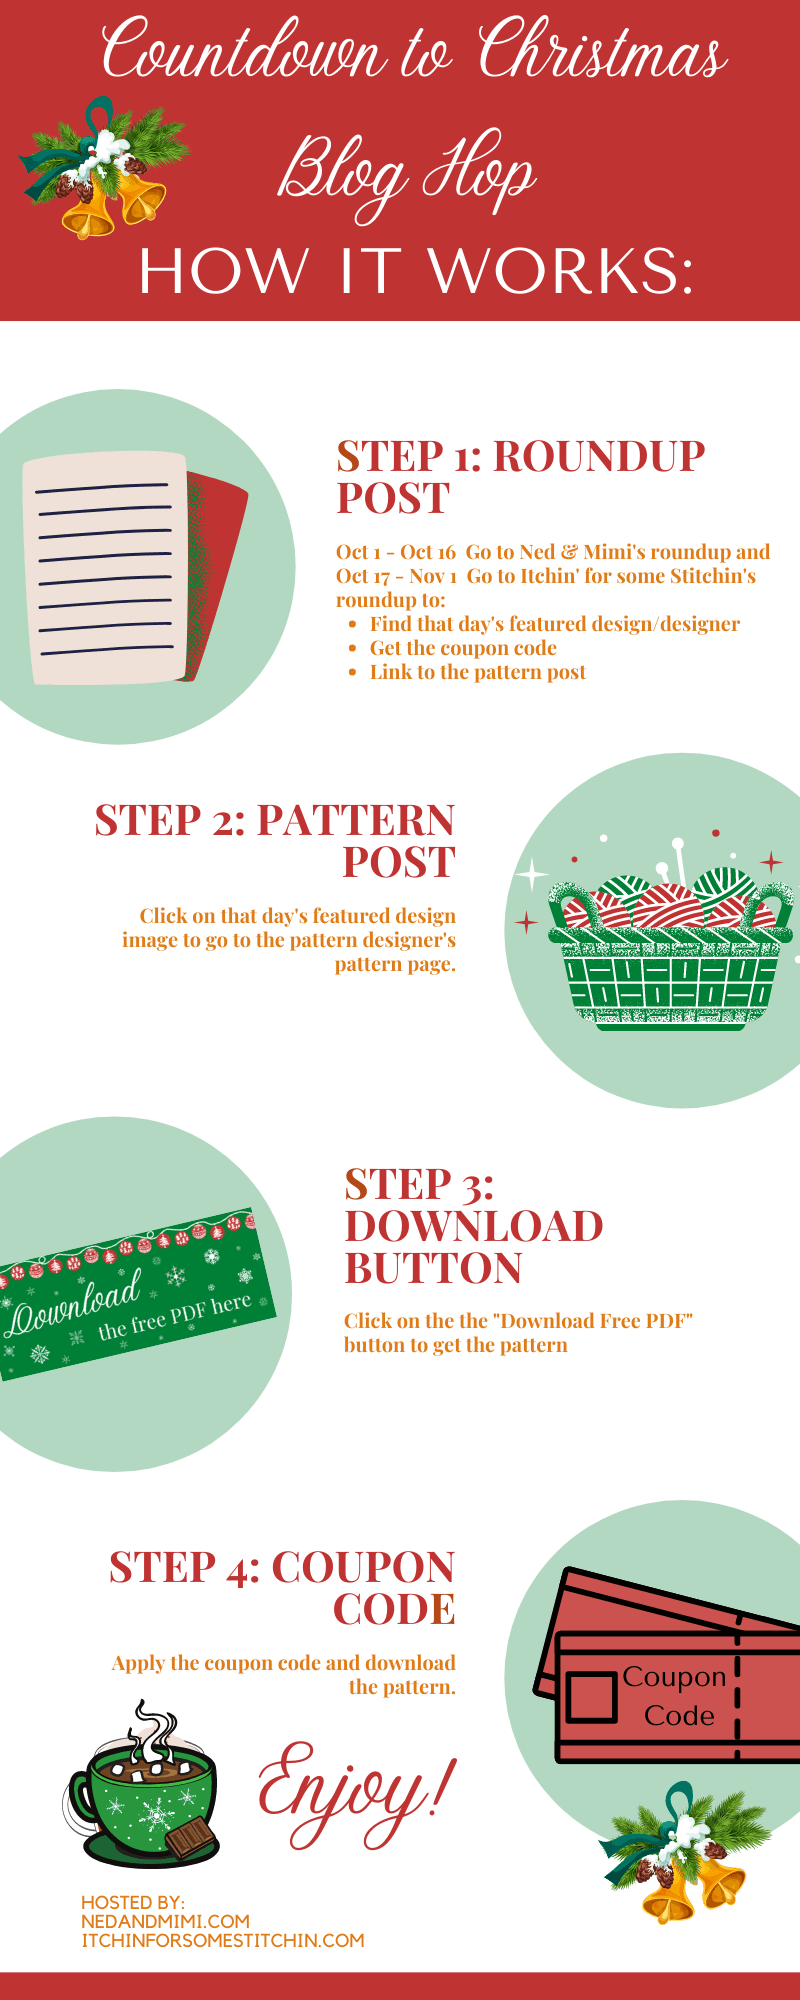 How it works infographic_Countdown to Christmas